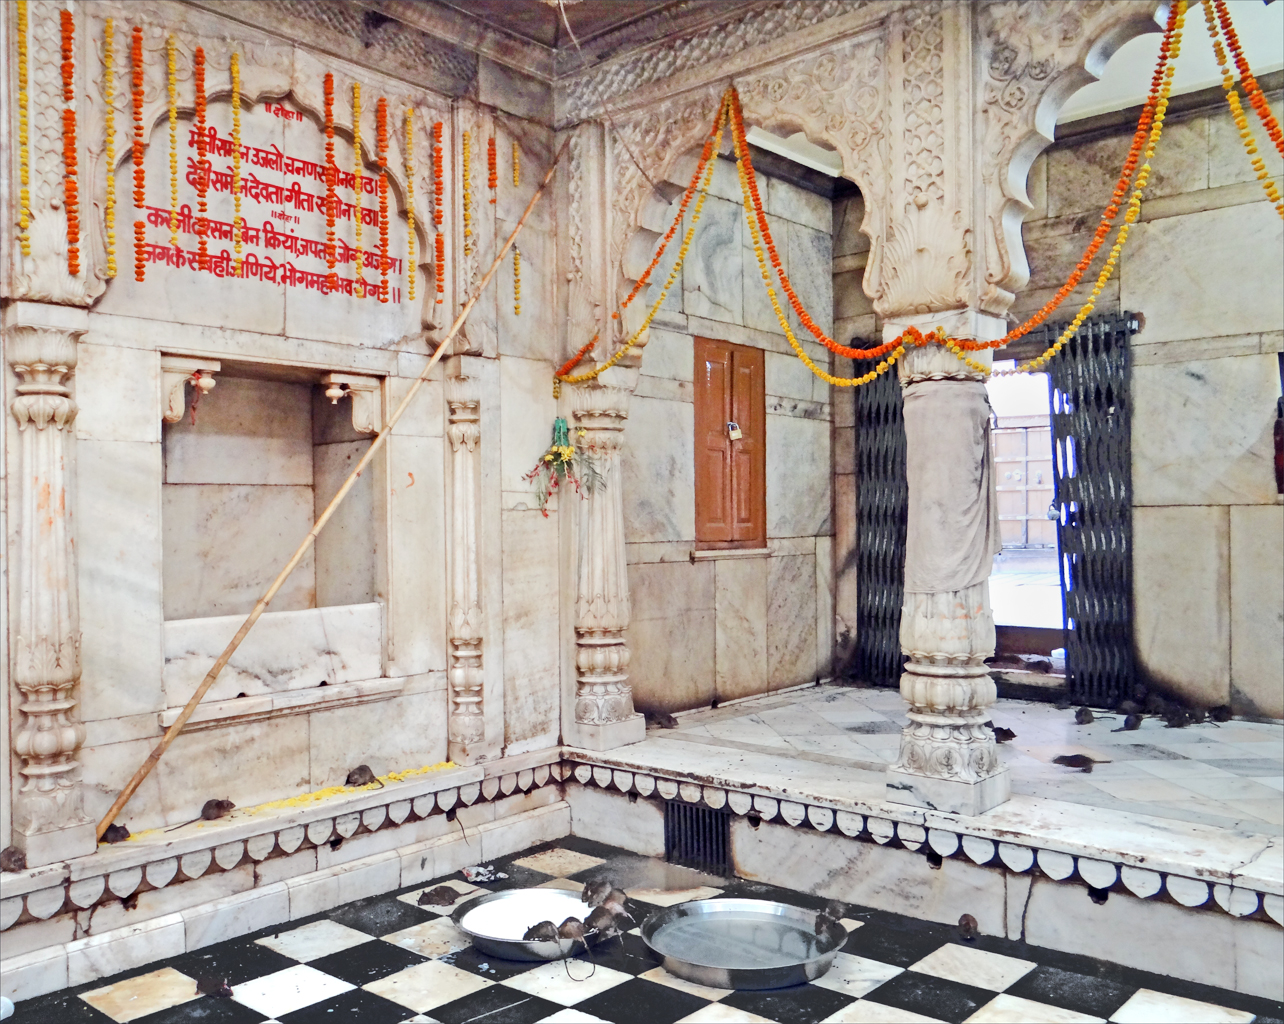 Architecture of the Karni Mata Mandir